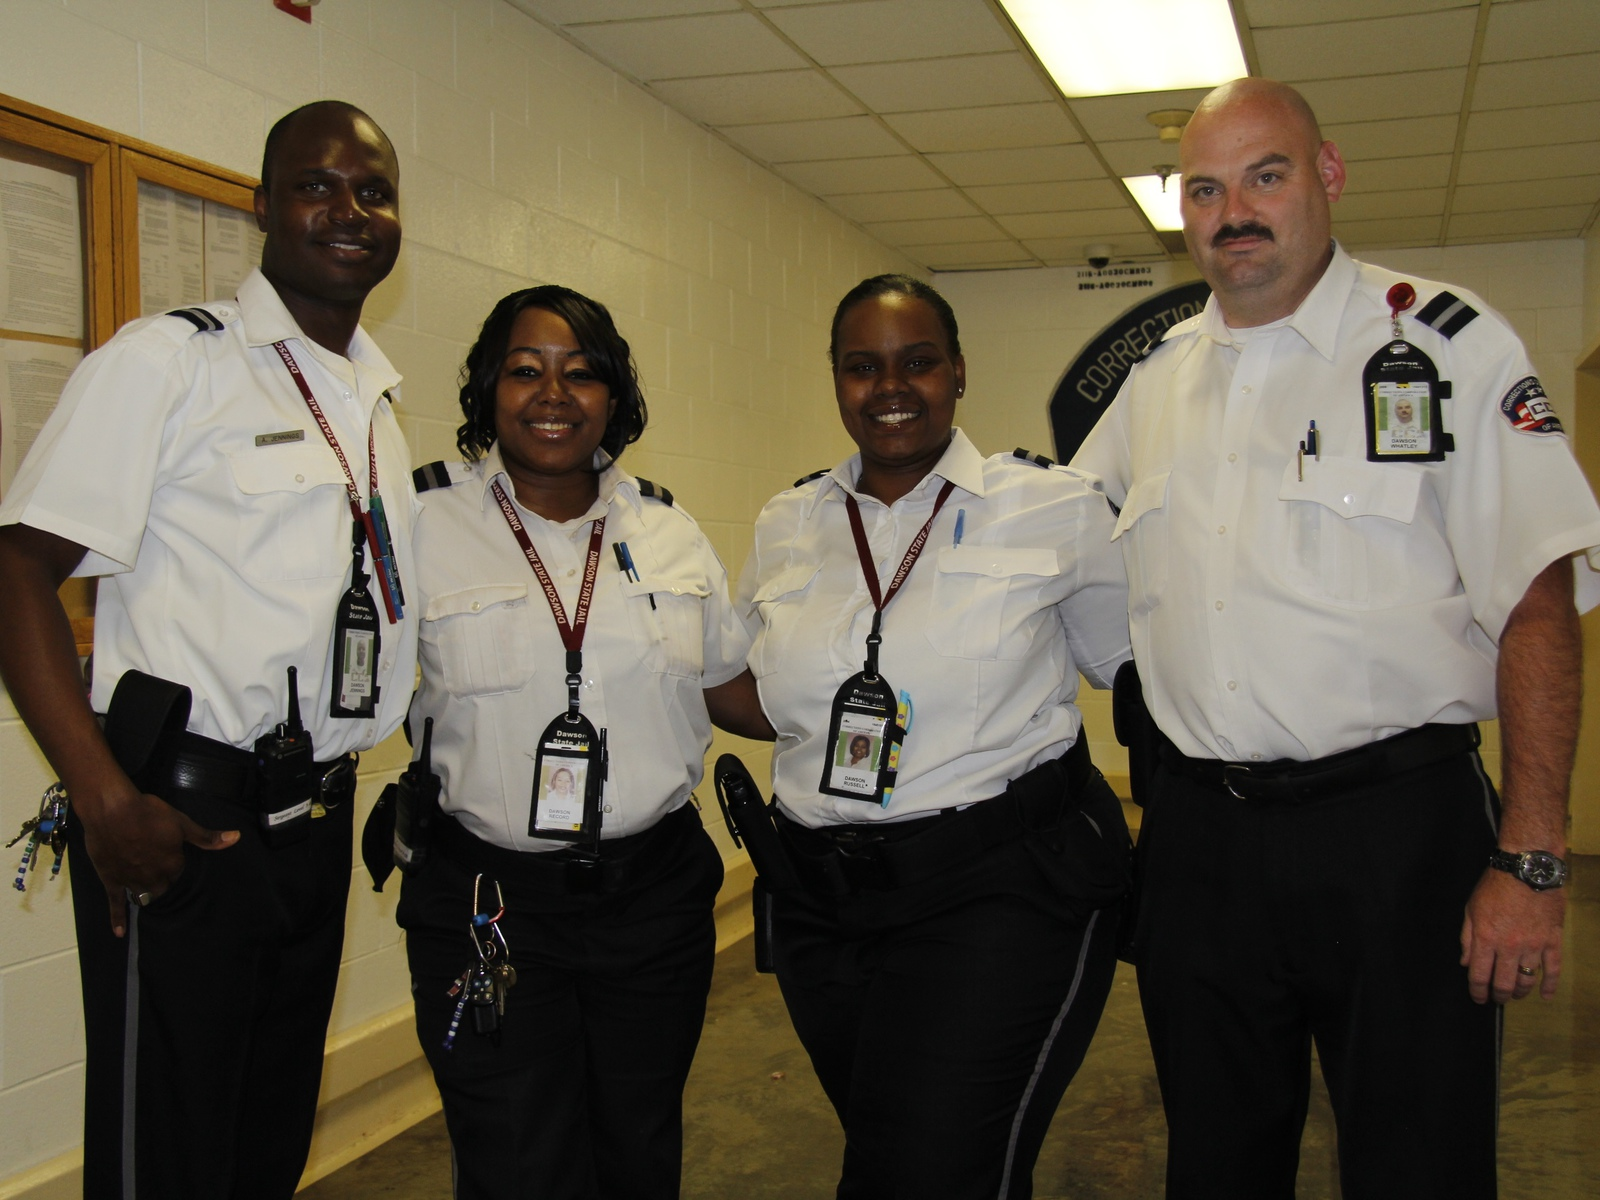 Nys Corrections Officer Salary Corrections Officer Test